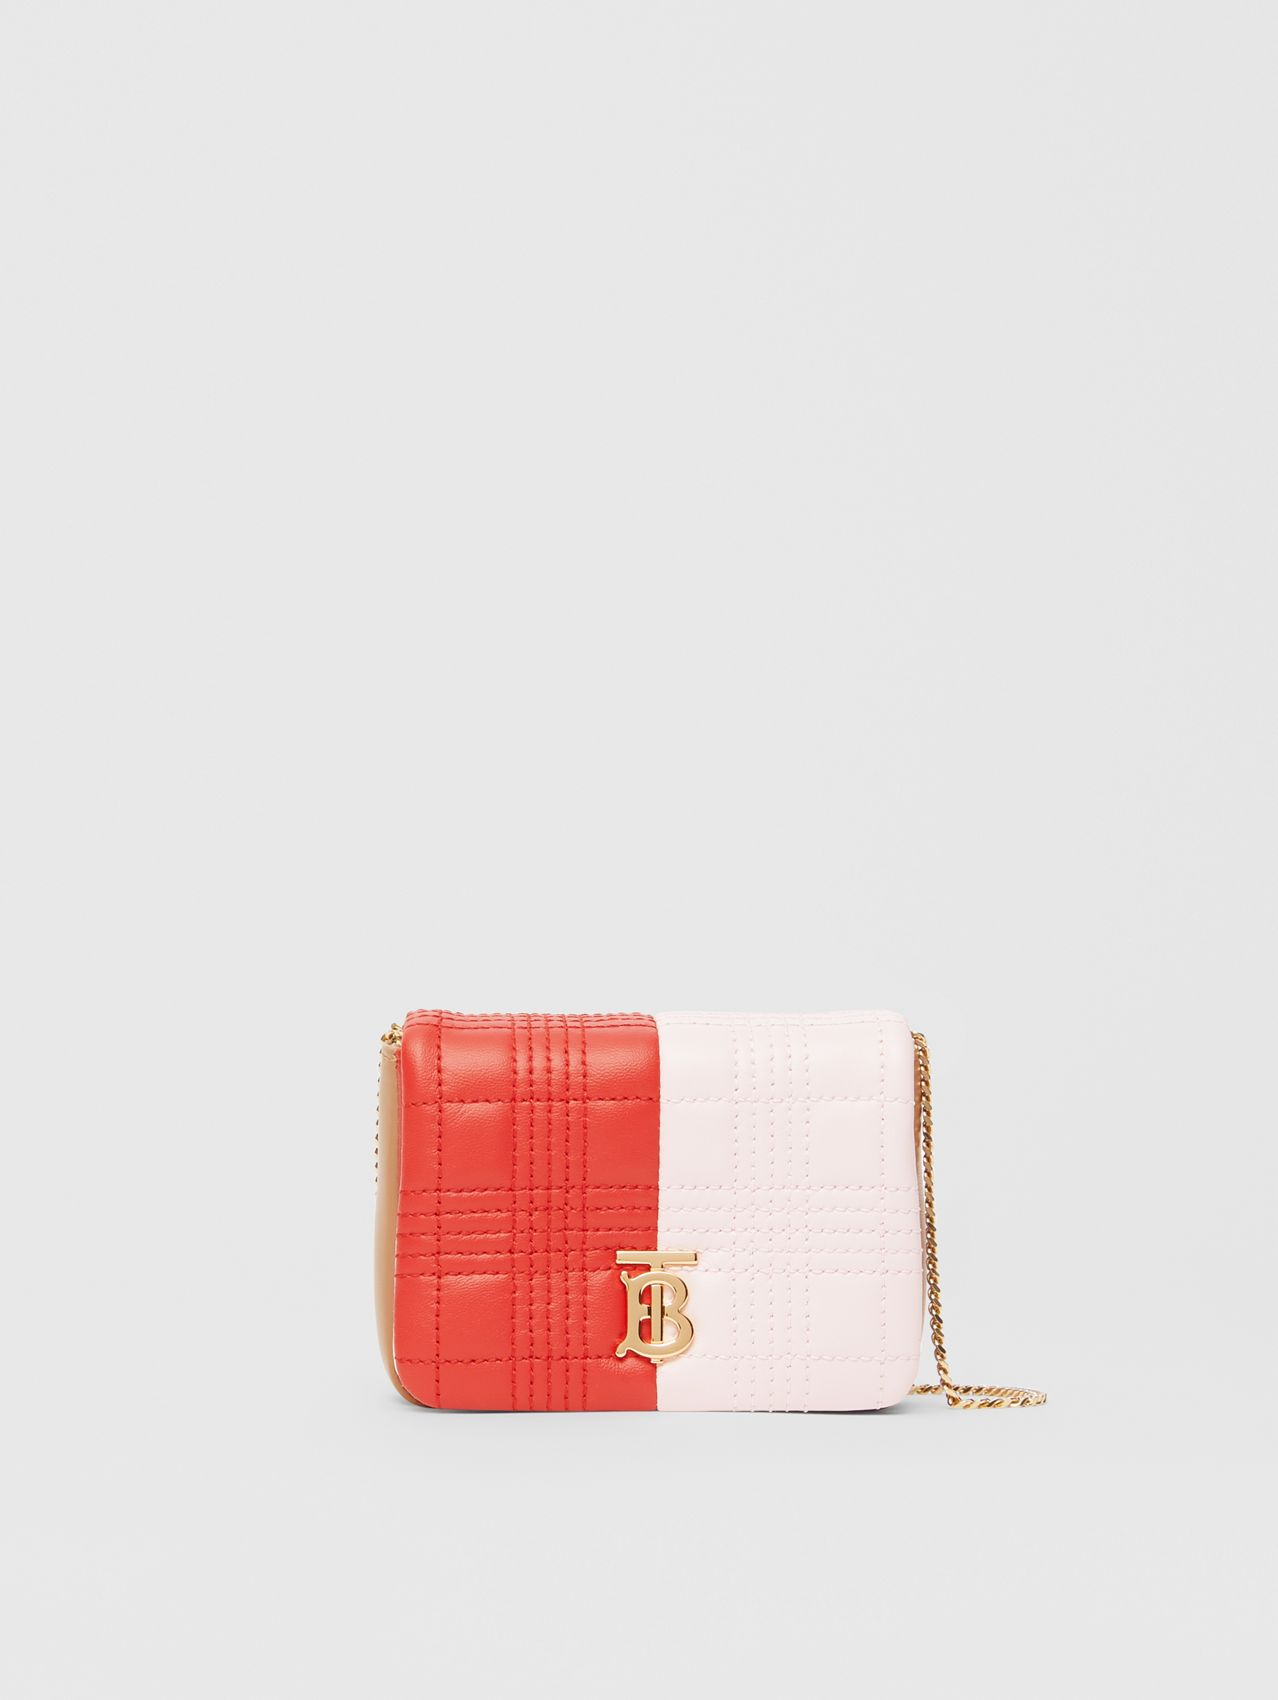 Micro Quilted Tri-tone Lambskin Lola Bag in Red/pink/camel